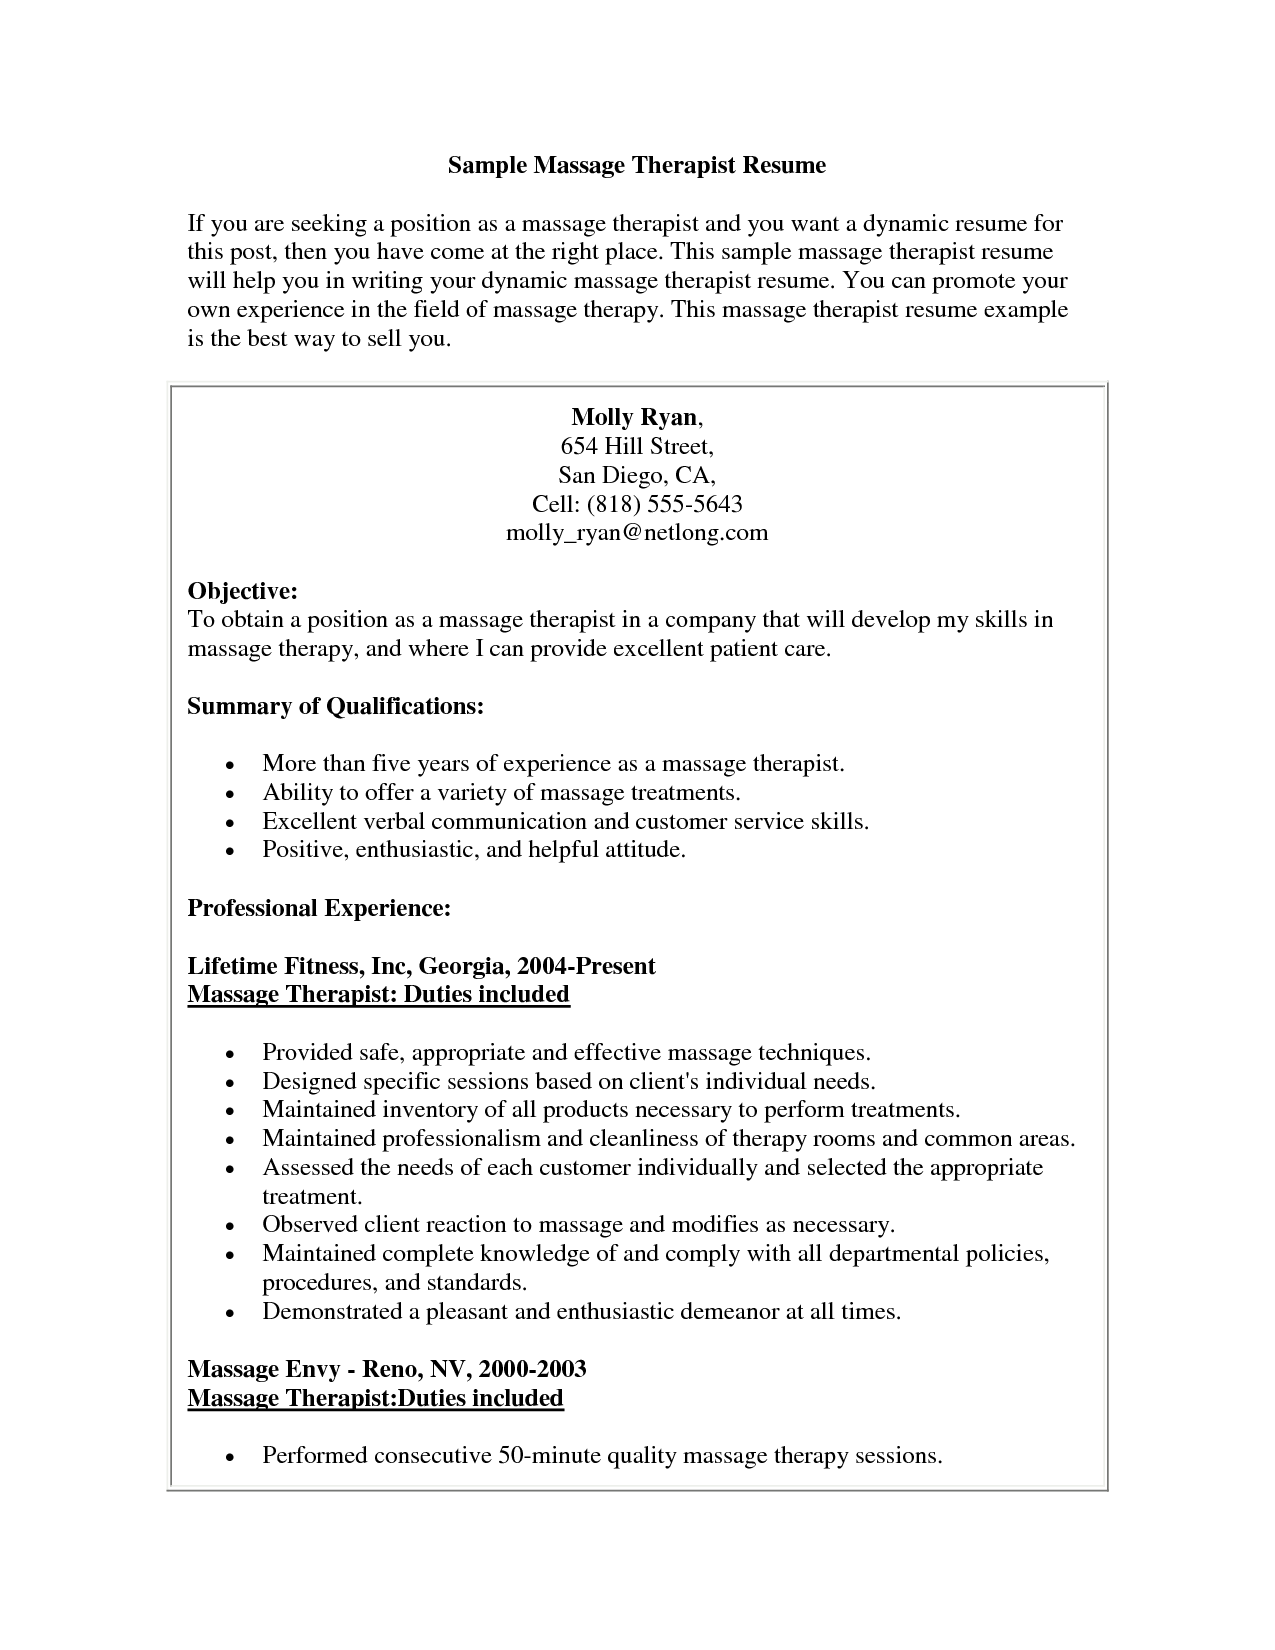 Objectives To Put On A Resume Massage Therapist Resume Sample Massage Therapist Resume Sample